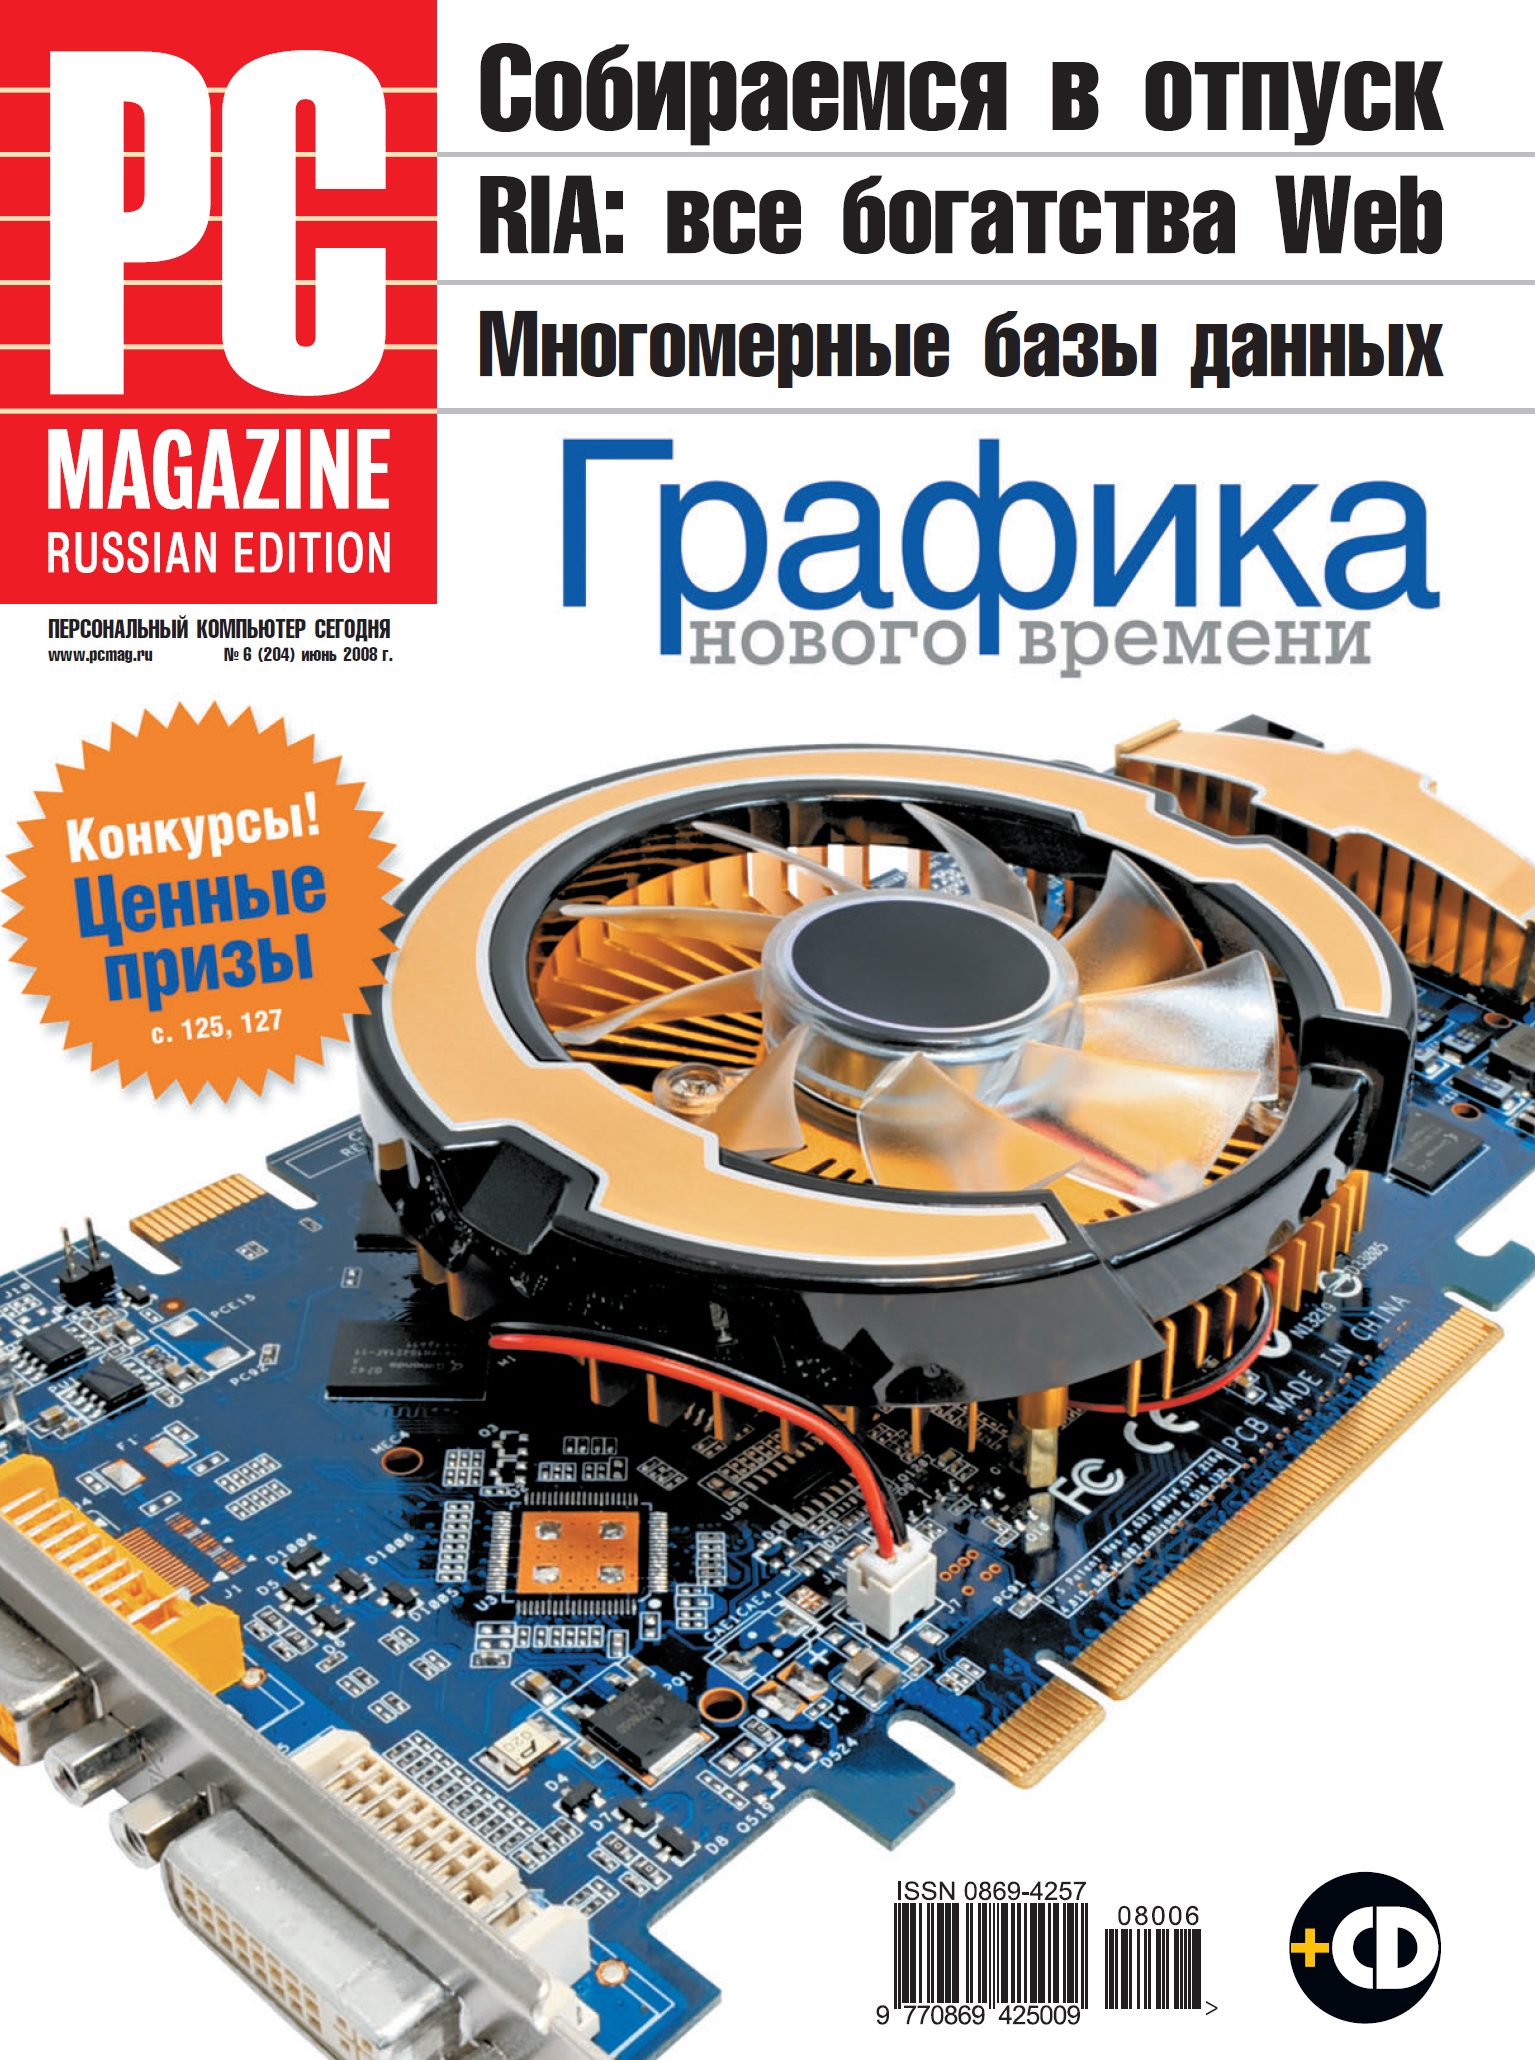 PC Magazine/RE Журнал PC Magazine/RE №06/2008 бренды